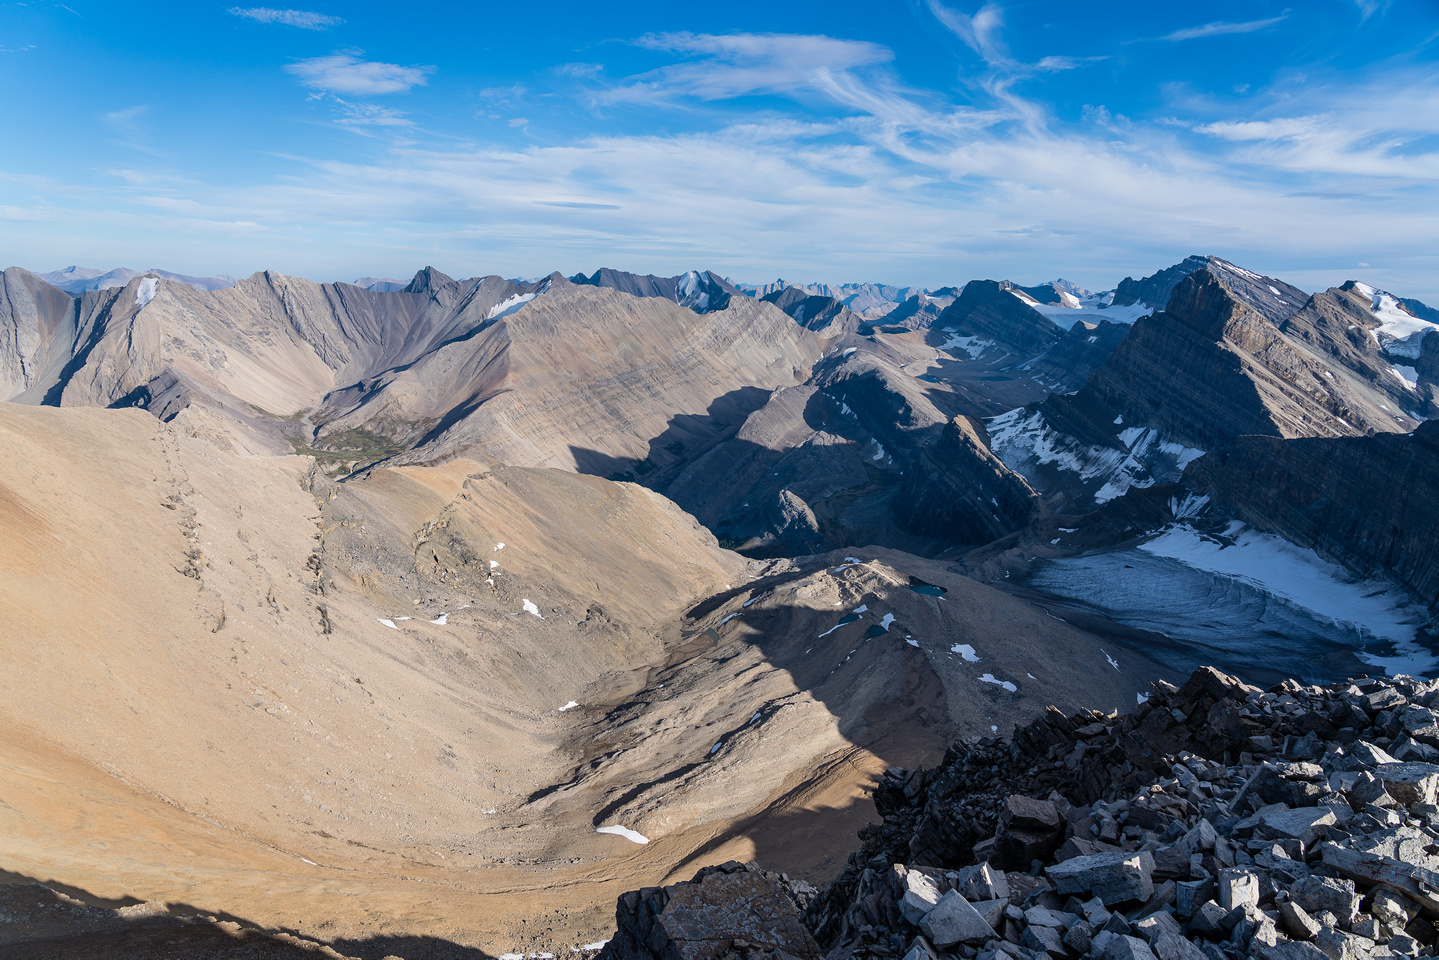 Snort, Bleat, McConnell, Drummond and Cataract in a wildly remote area of Banff National Park.